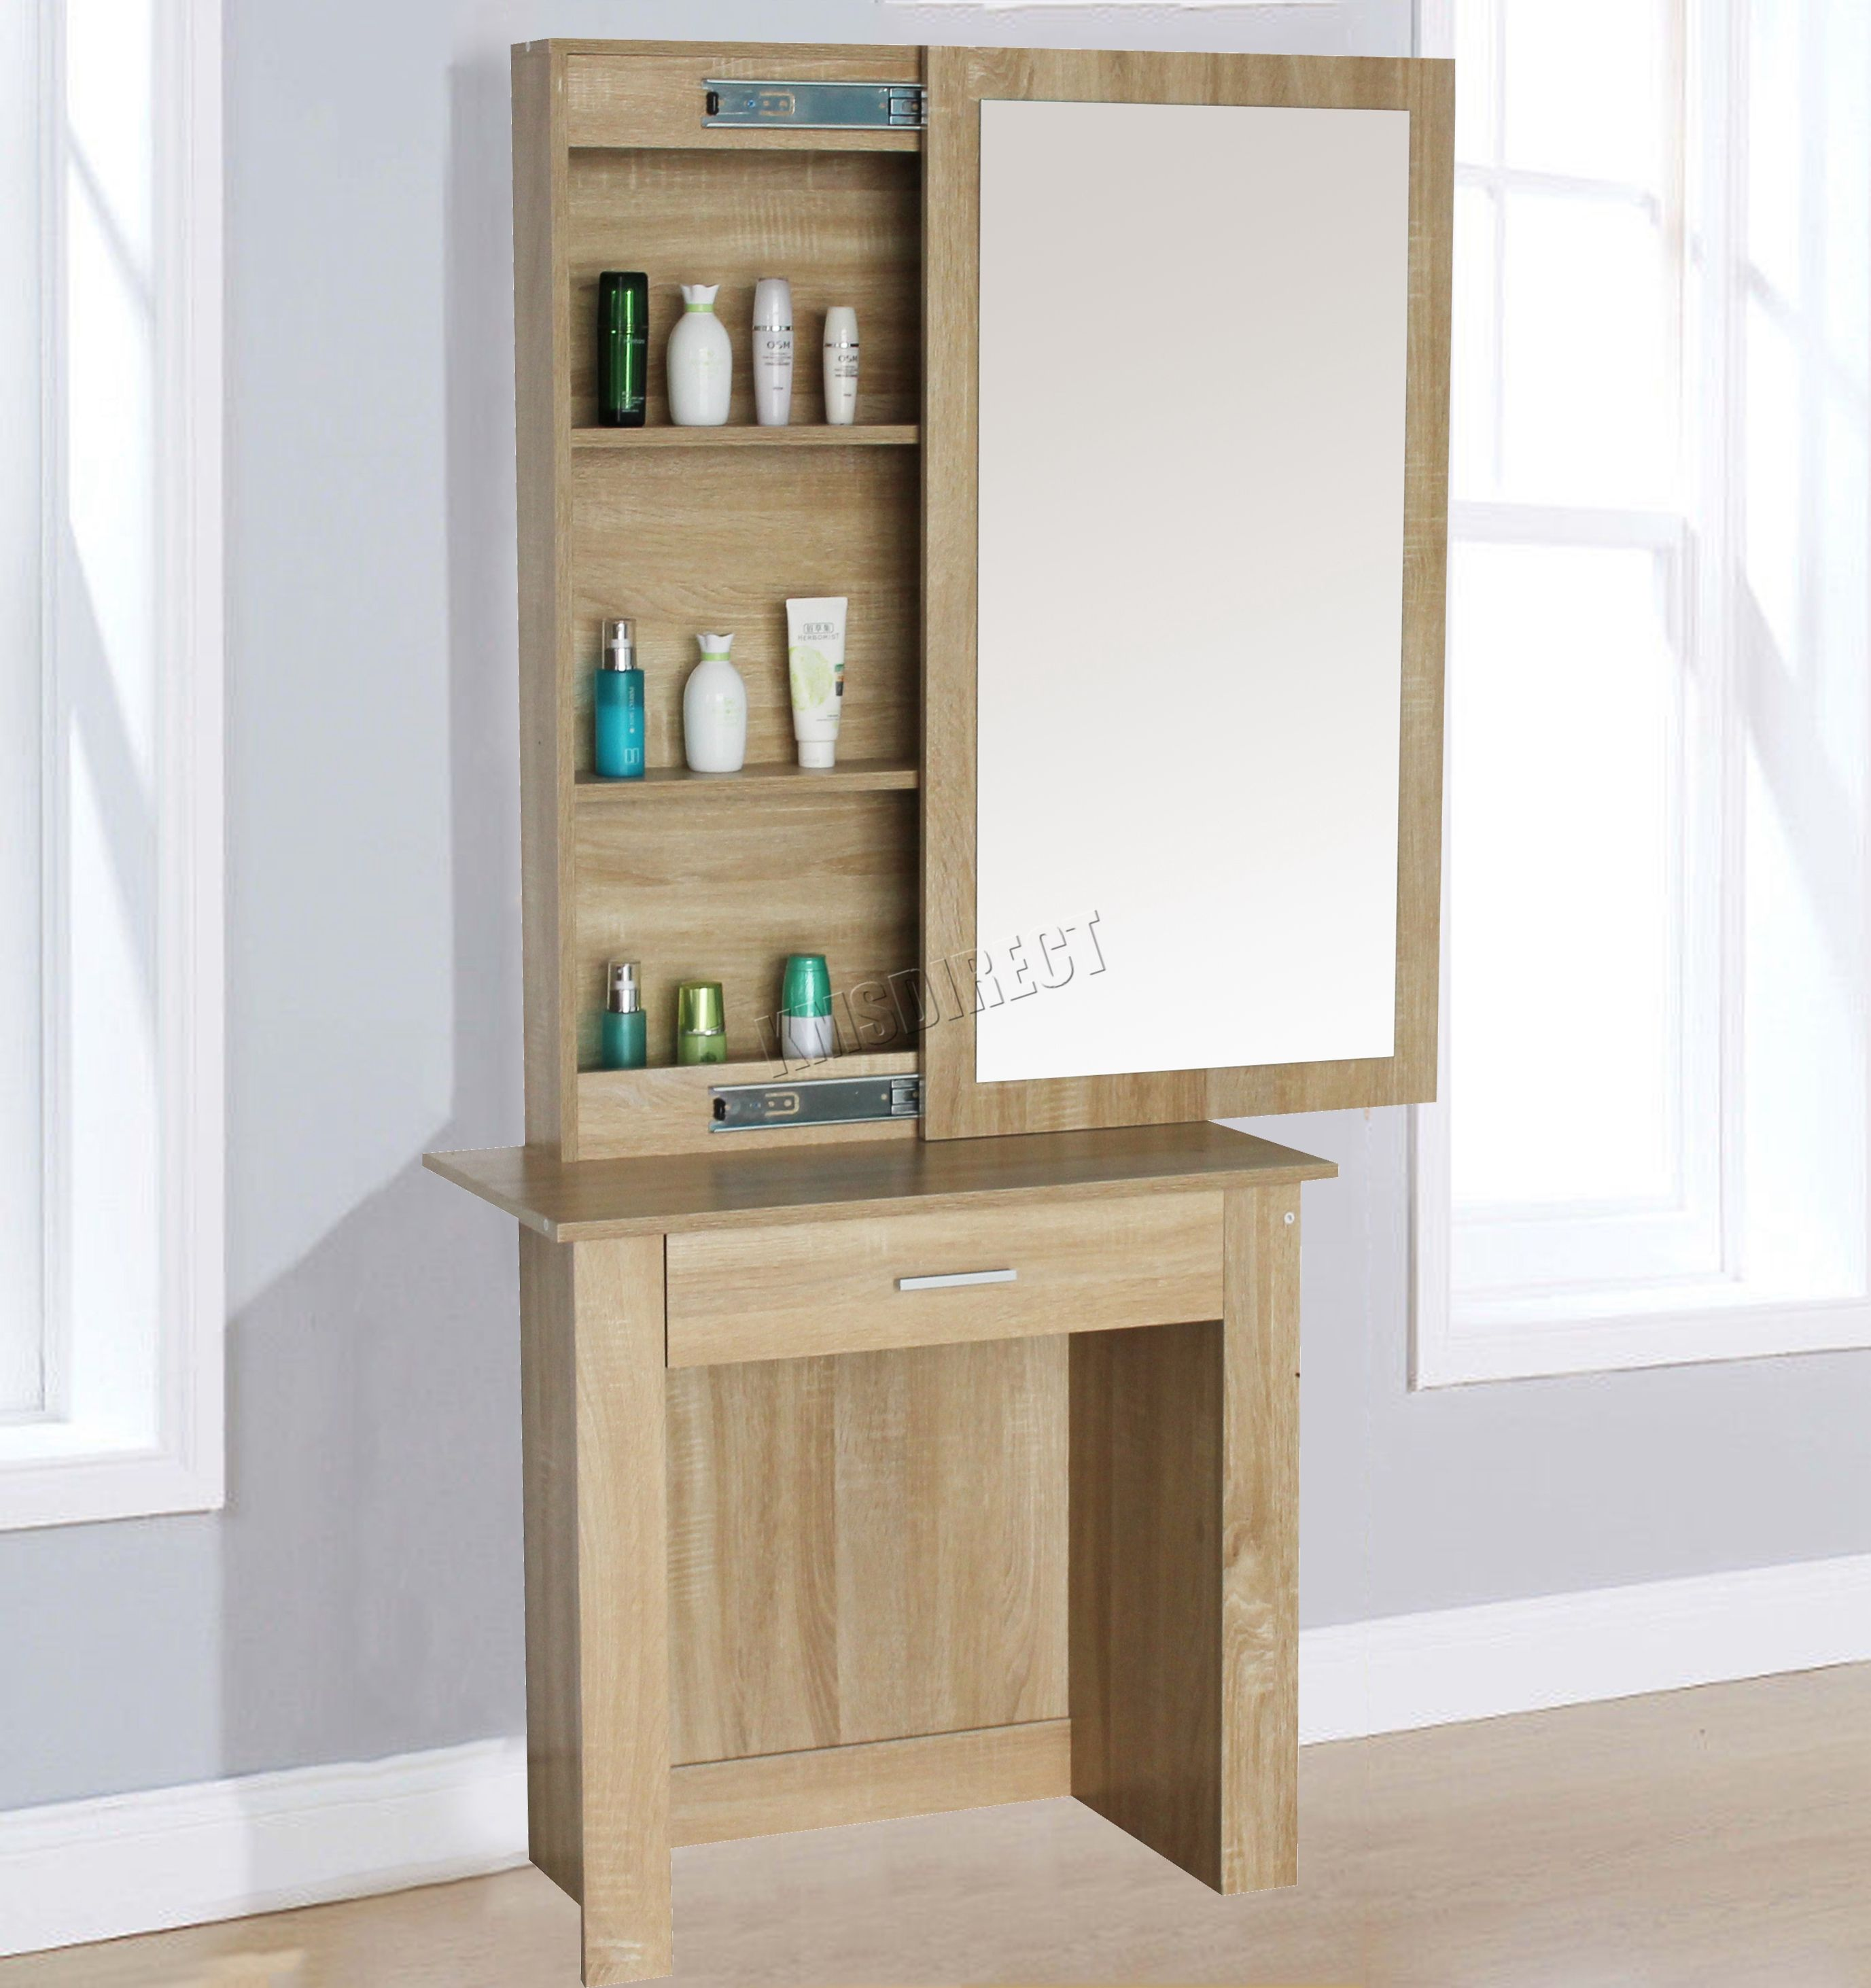 Dressing Table With Full Mirror Jpg 1200 1200 Dressing Table Design Dressing Table Mirror Small Dressing Table